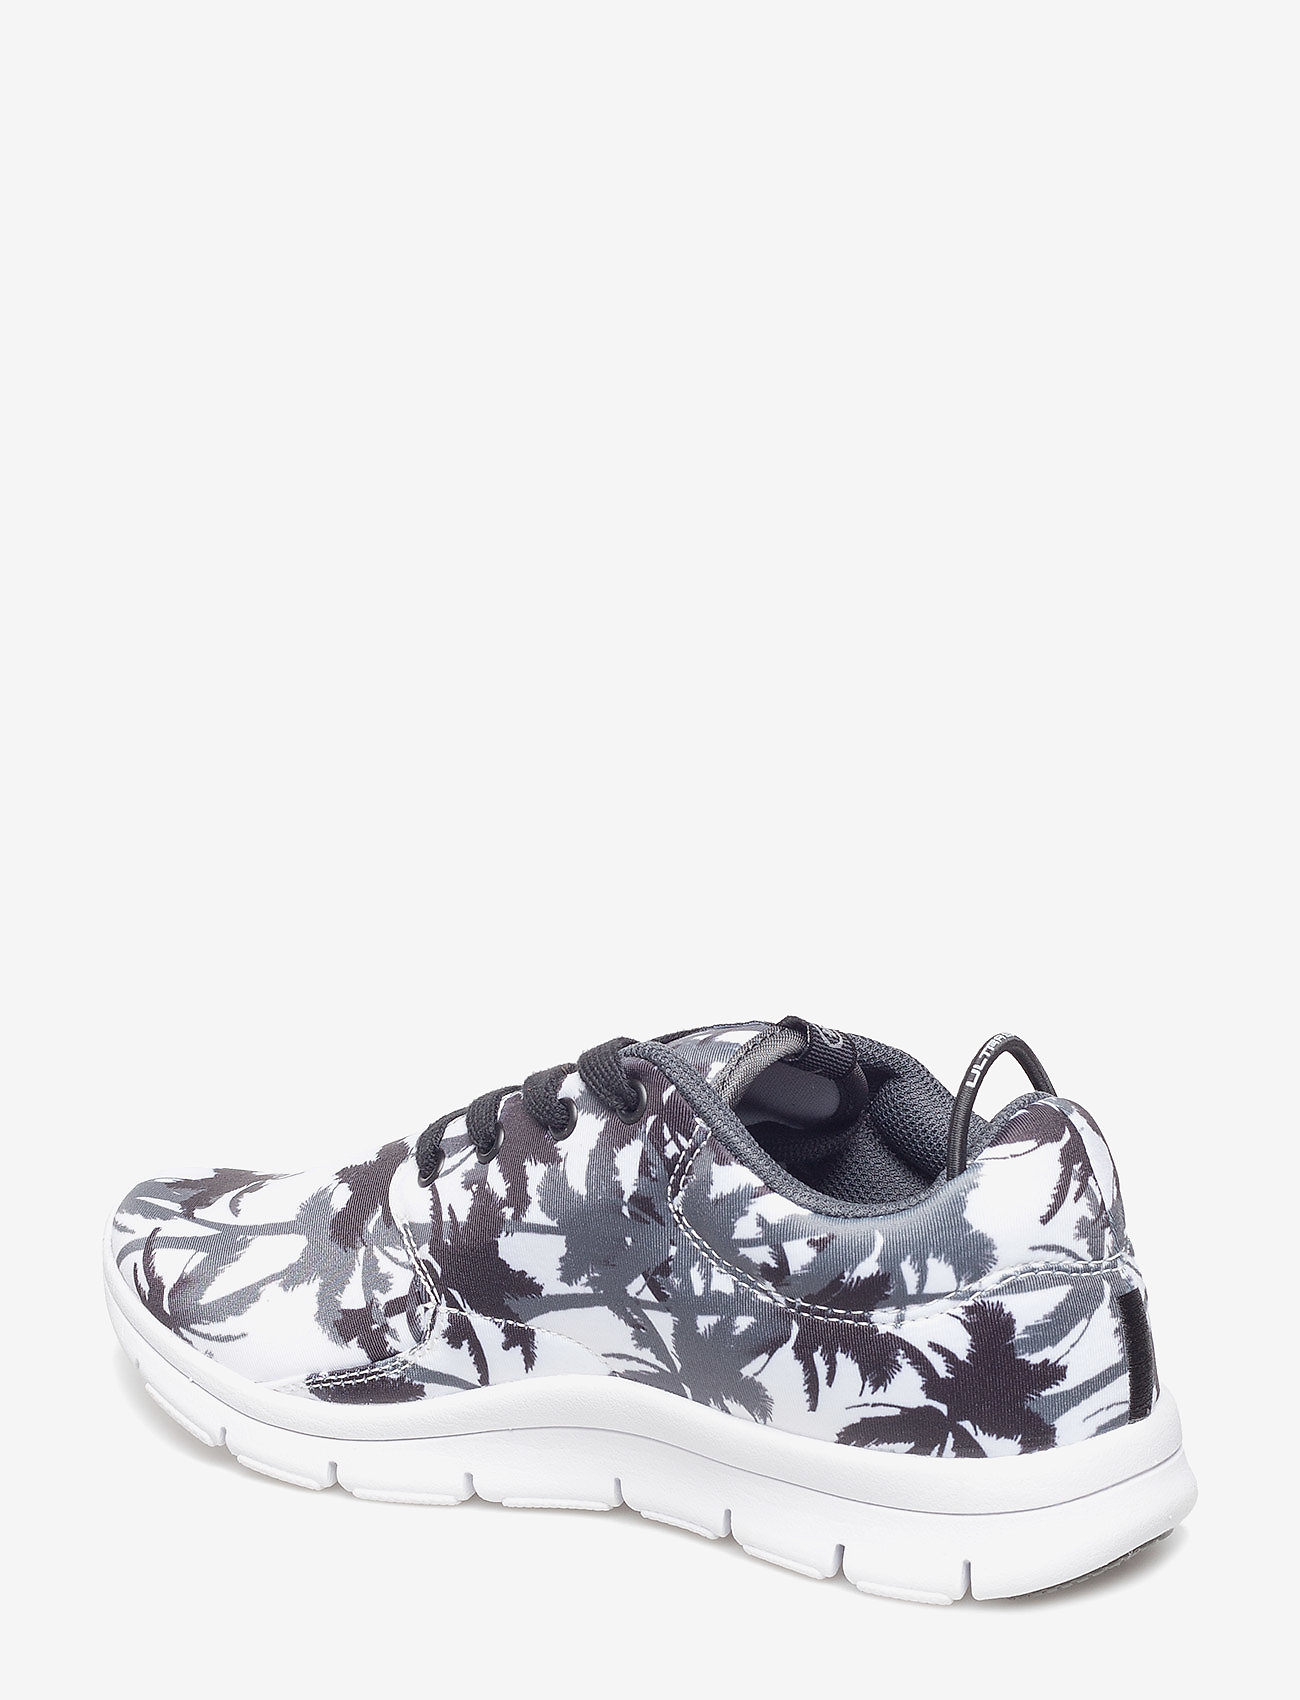 Superdry Scuba Runner (Electric Palm Mono) - Superdry